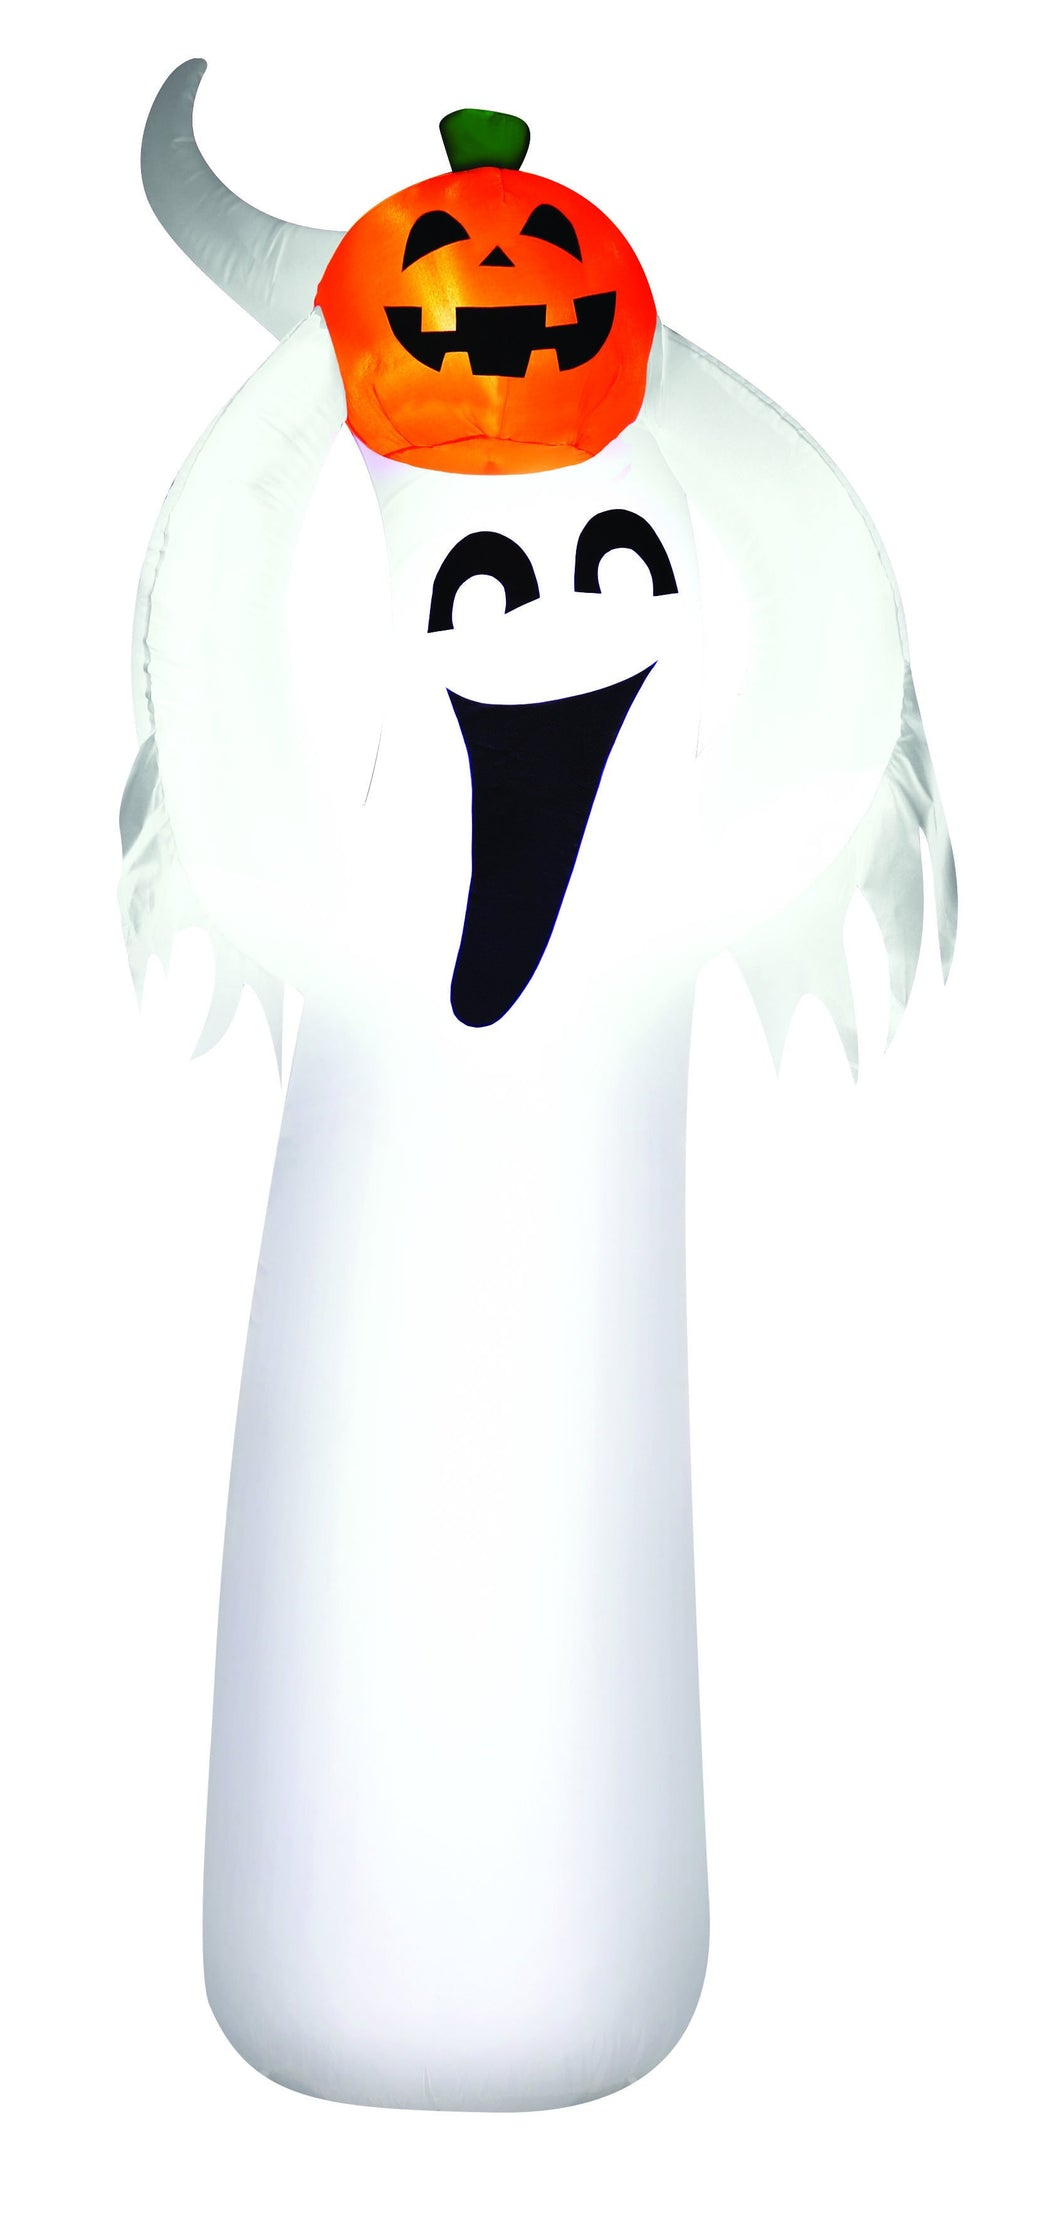 7' Airblown Ghost with a Pumpkin Halloween Inflatable